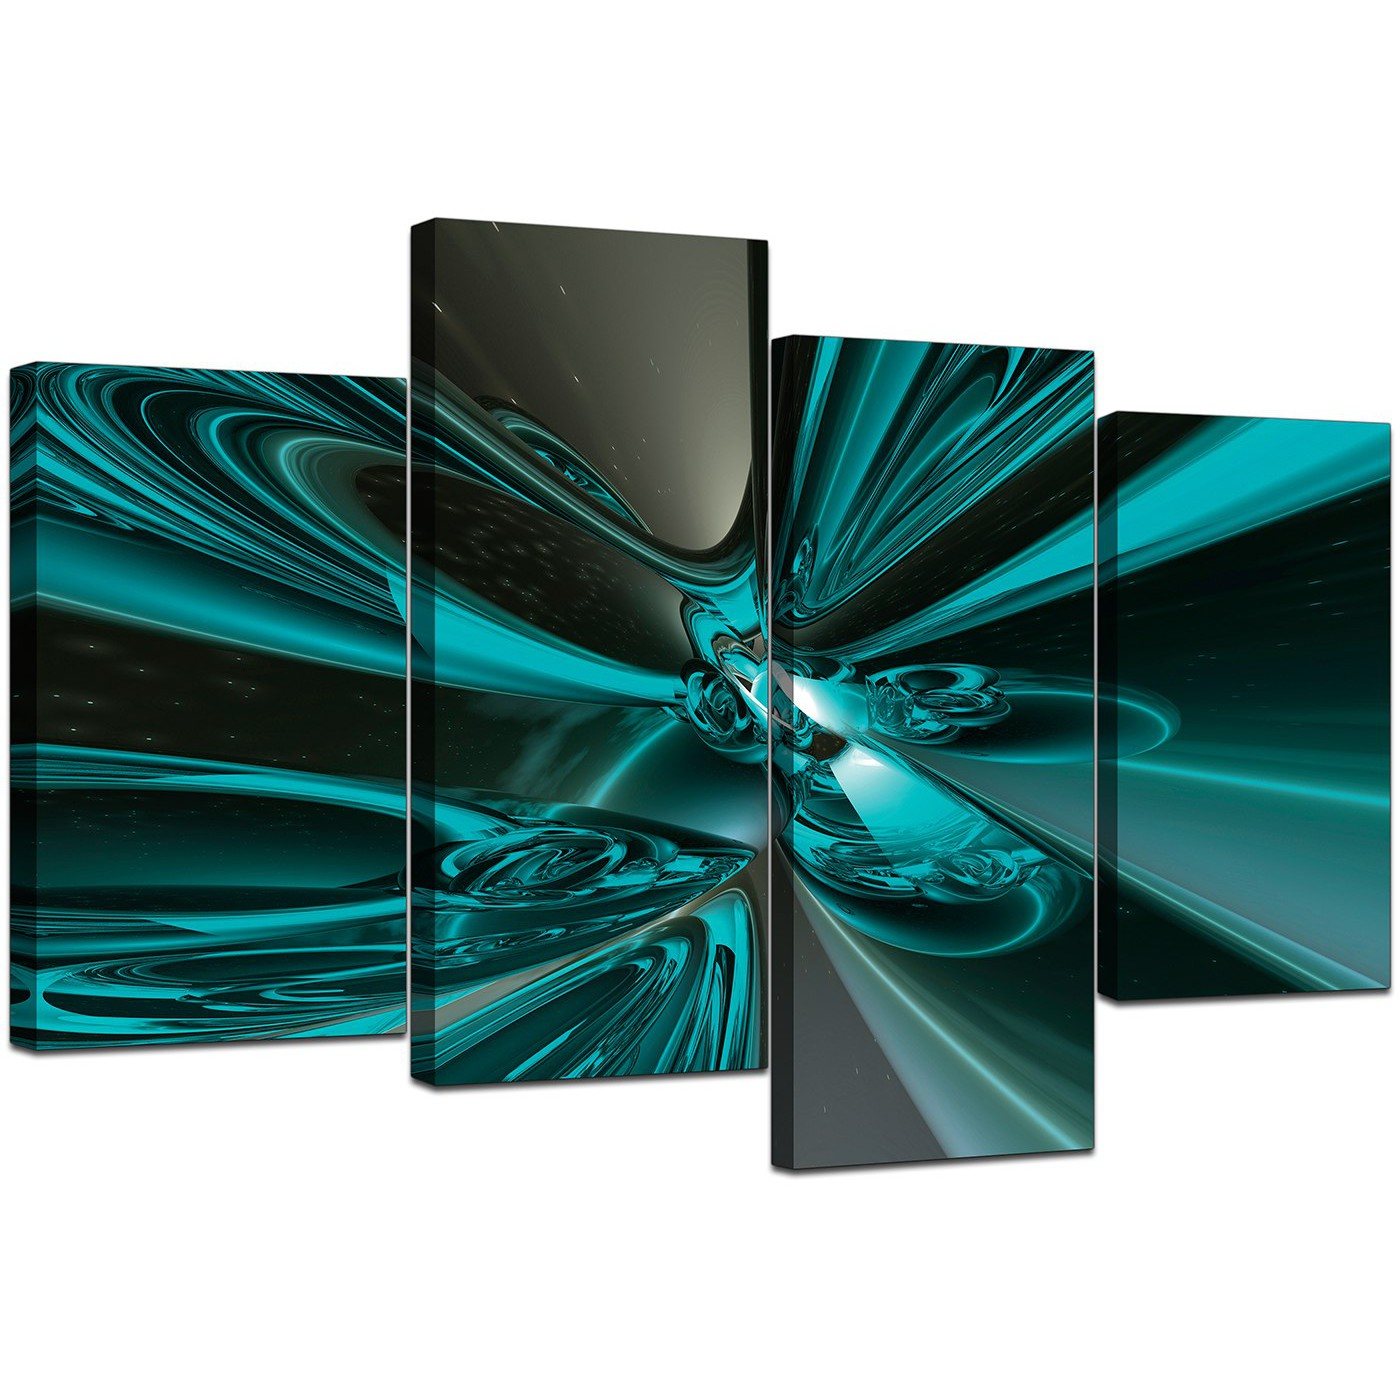 Large Canvas Prints Cheap Large Abstract Canvas Art In Teal For Living Room